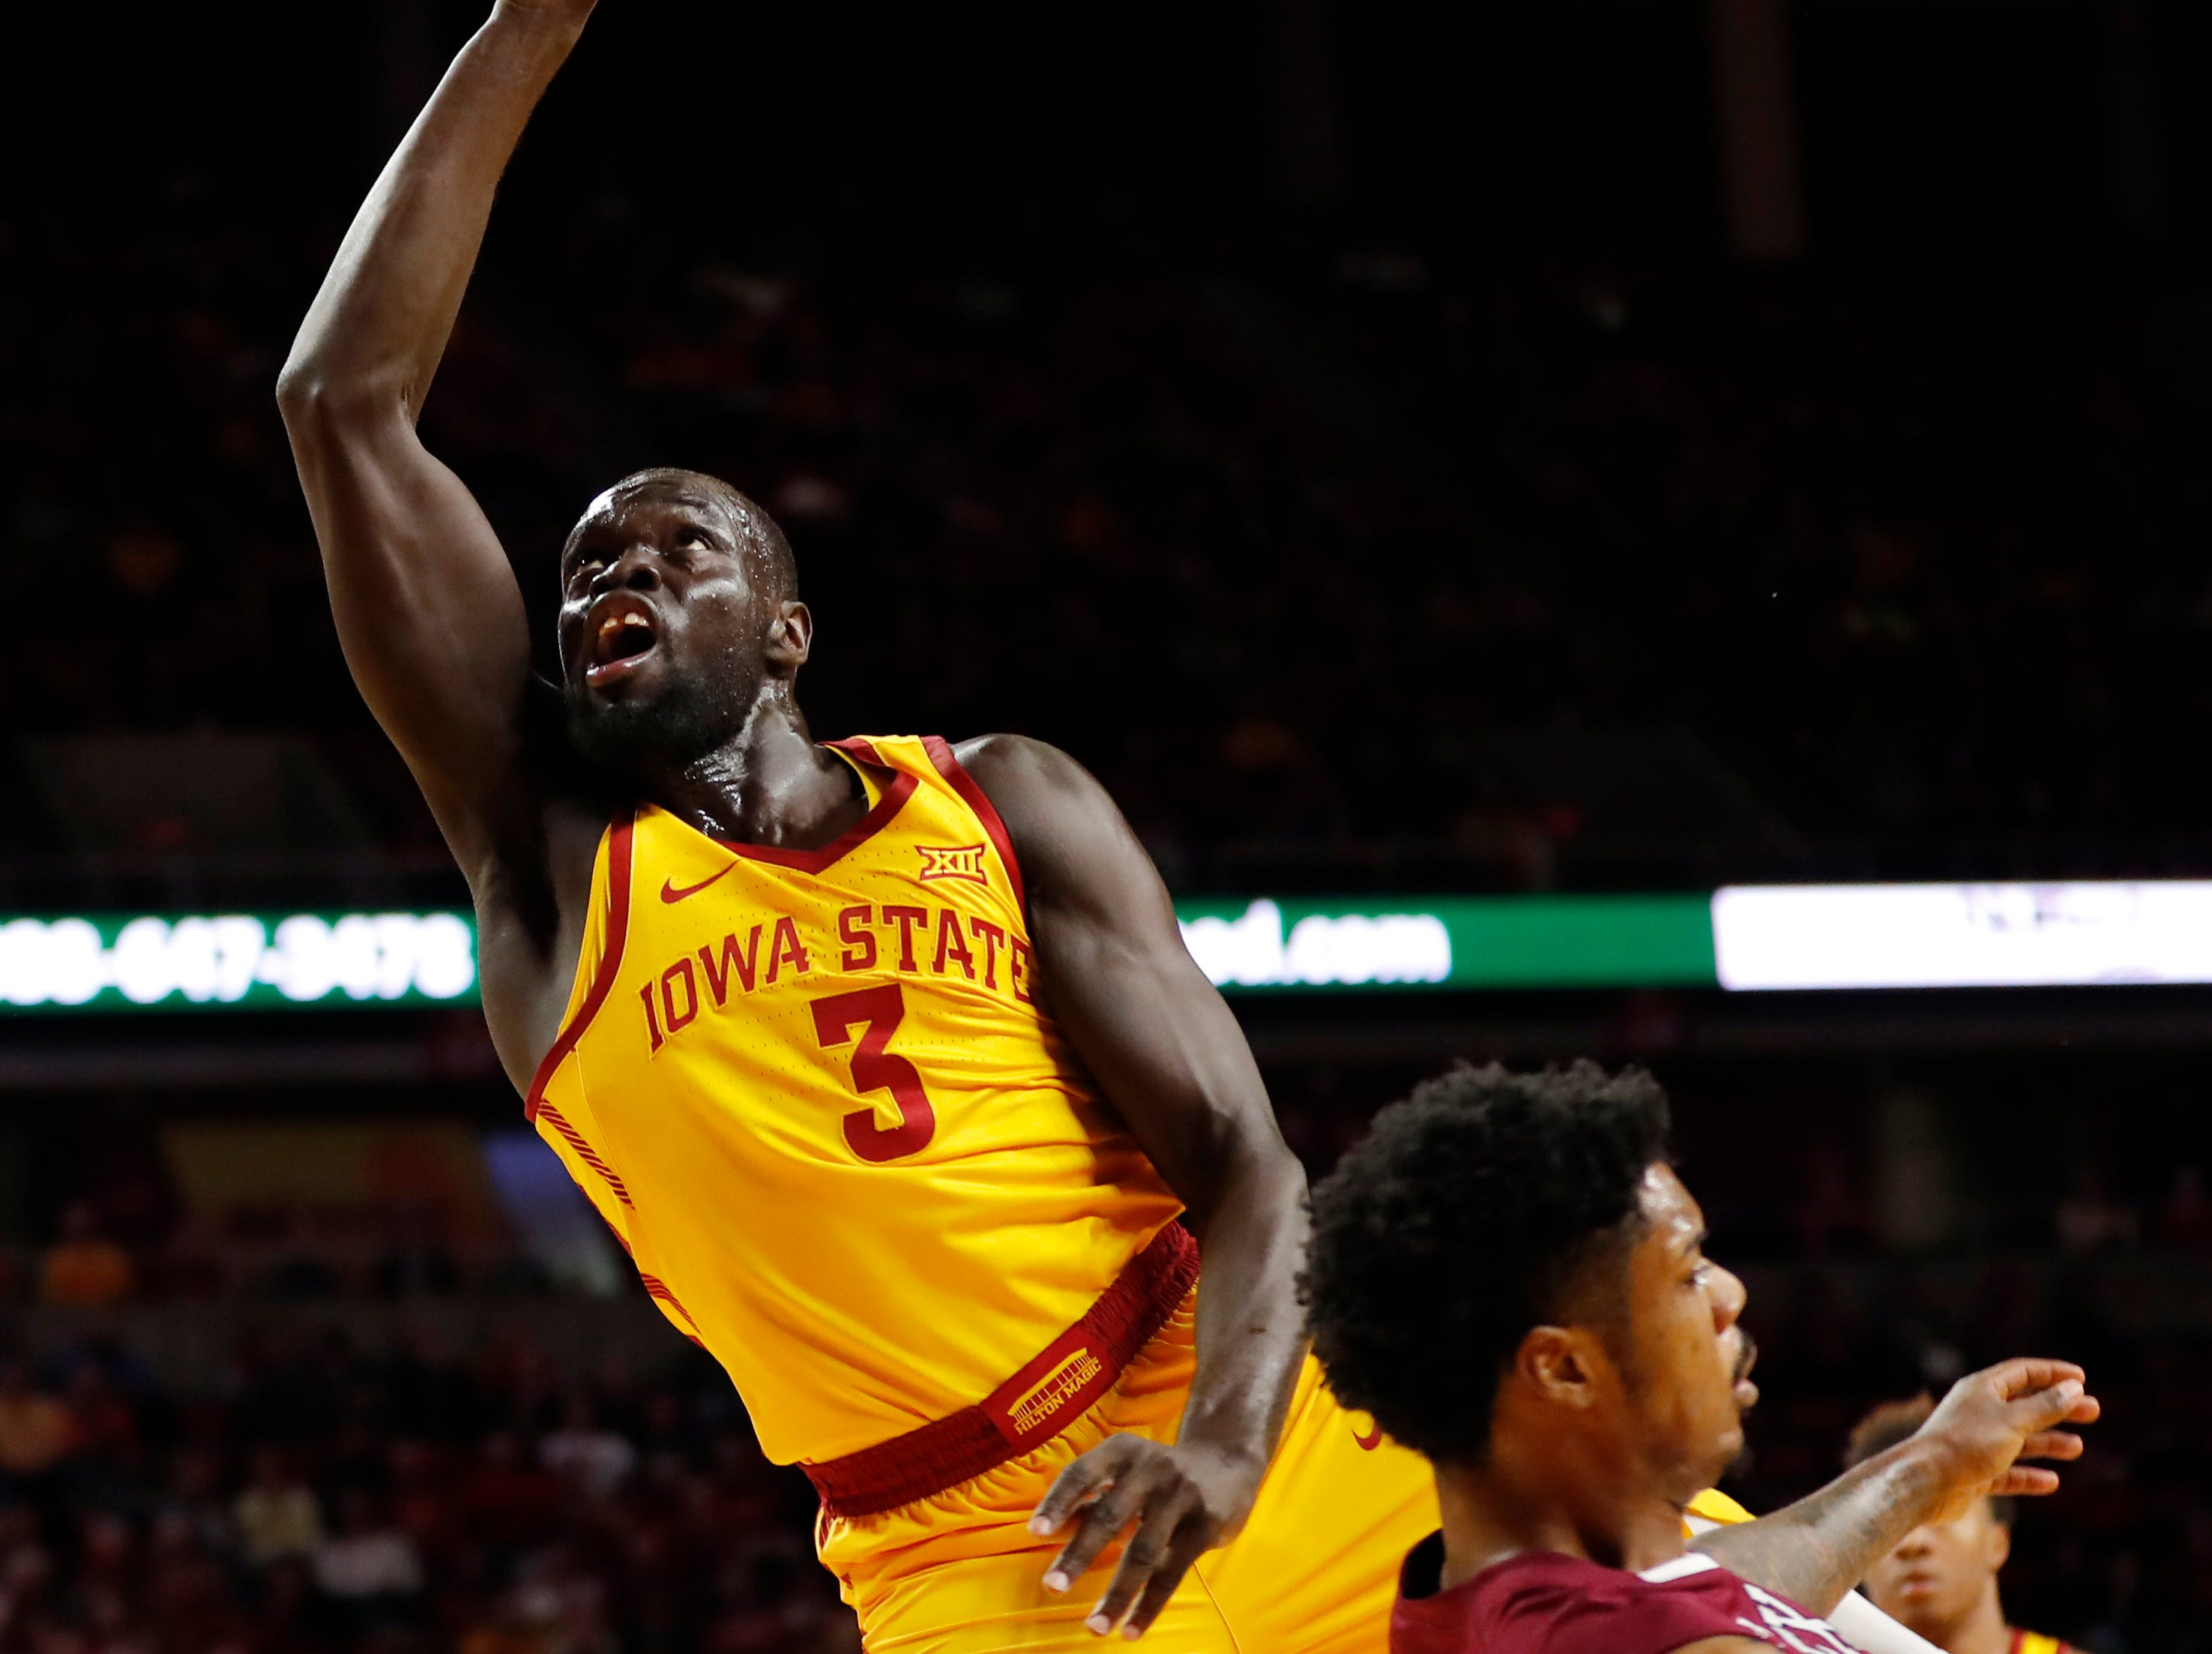 Iowa State guard Marial Shayok (3) is fouled by Texas Southern forward Devocio Butler, right, while driving to the basket during the first half of an NCAA college basketball game, Monday, Nov. 12, 2018, in Ames, Iowa.